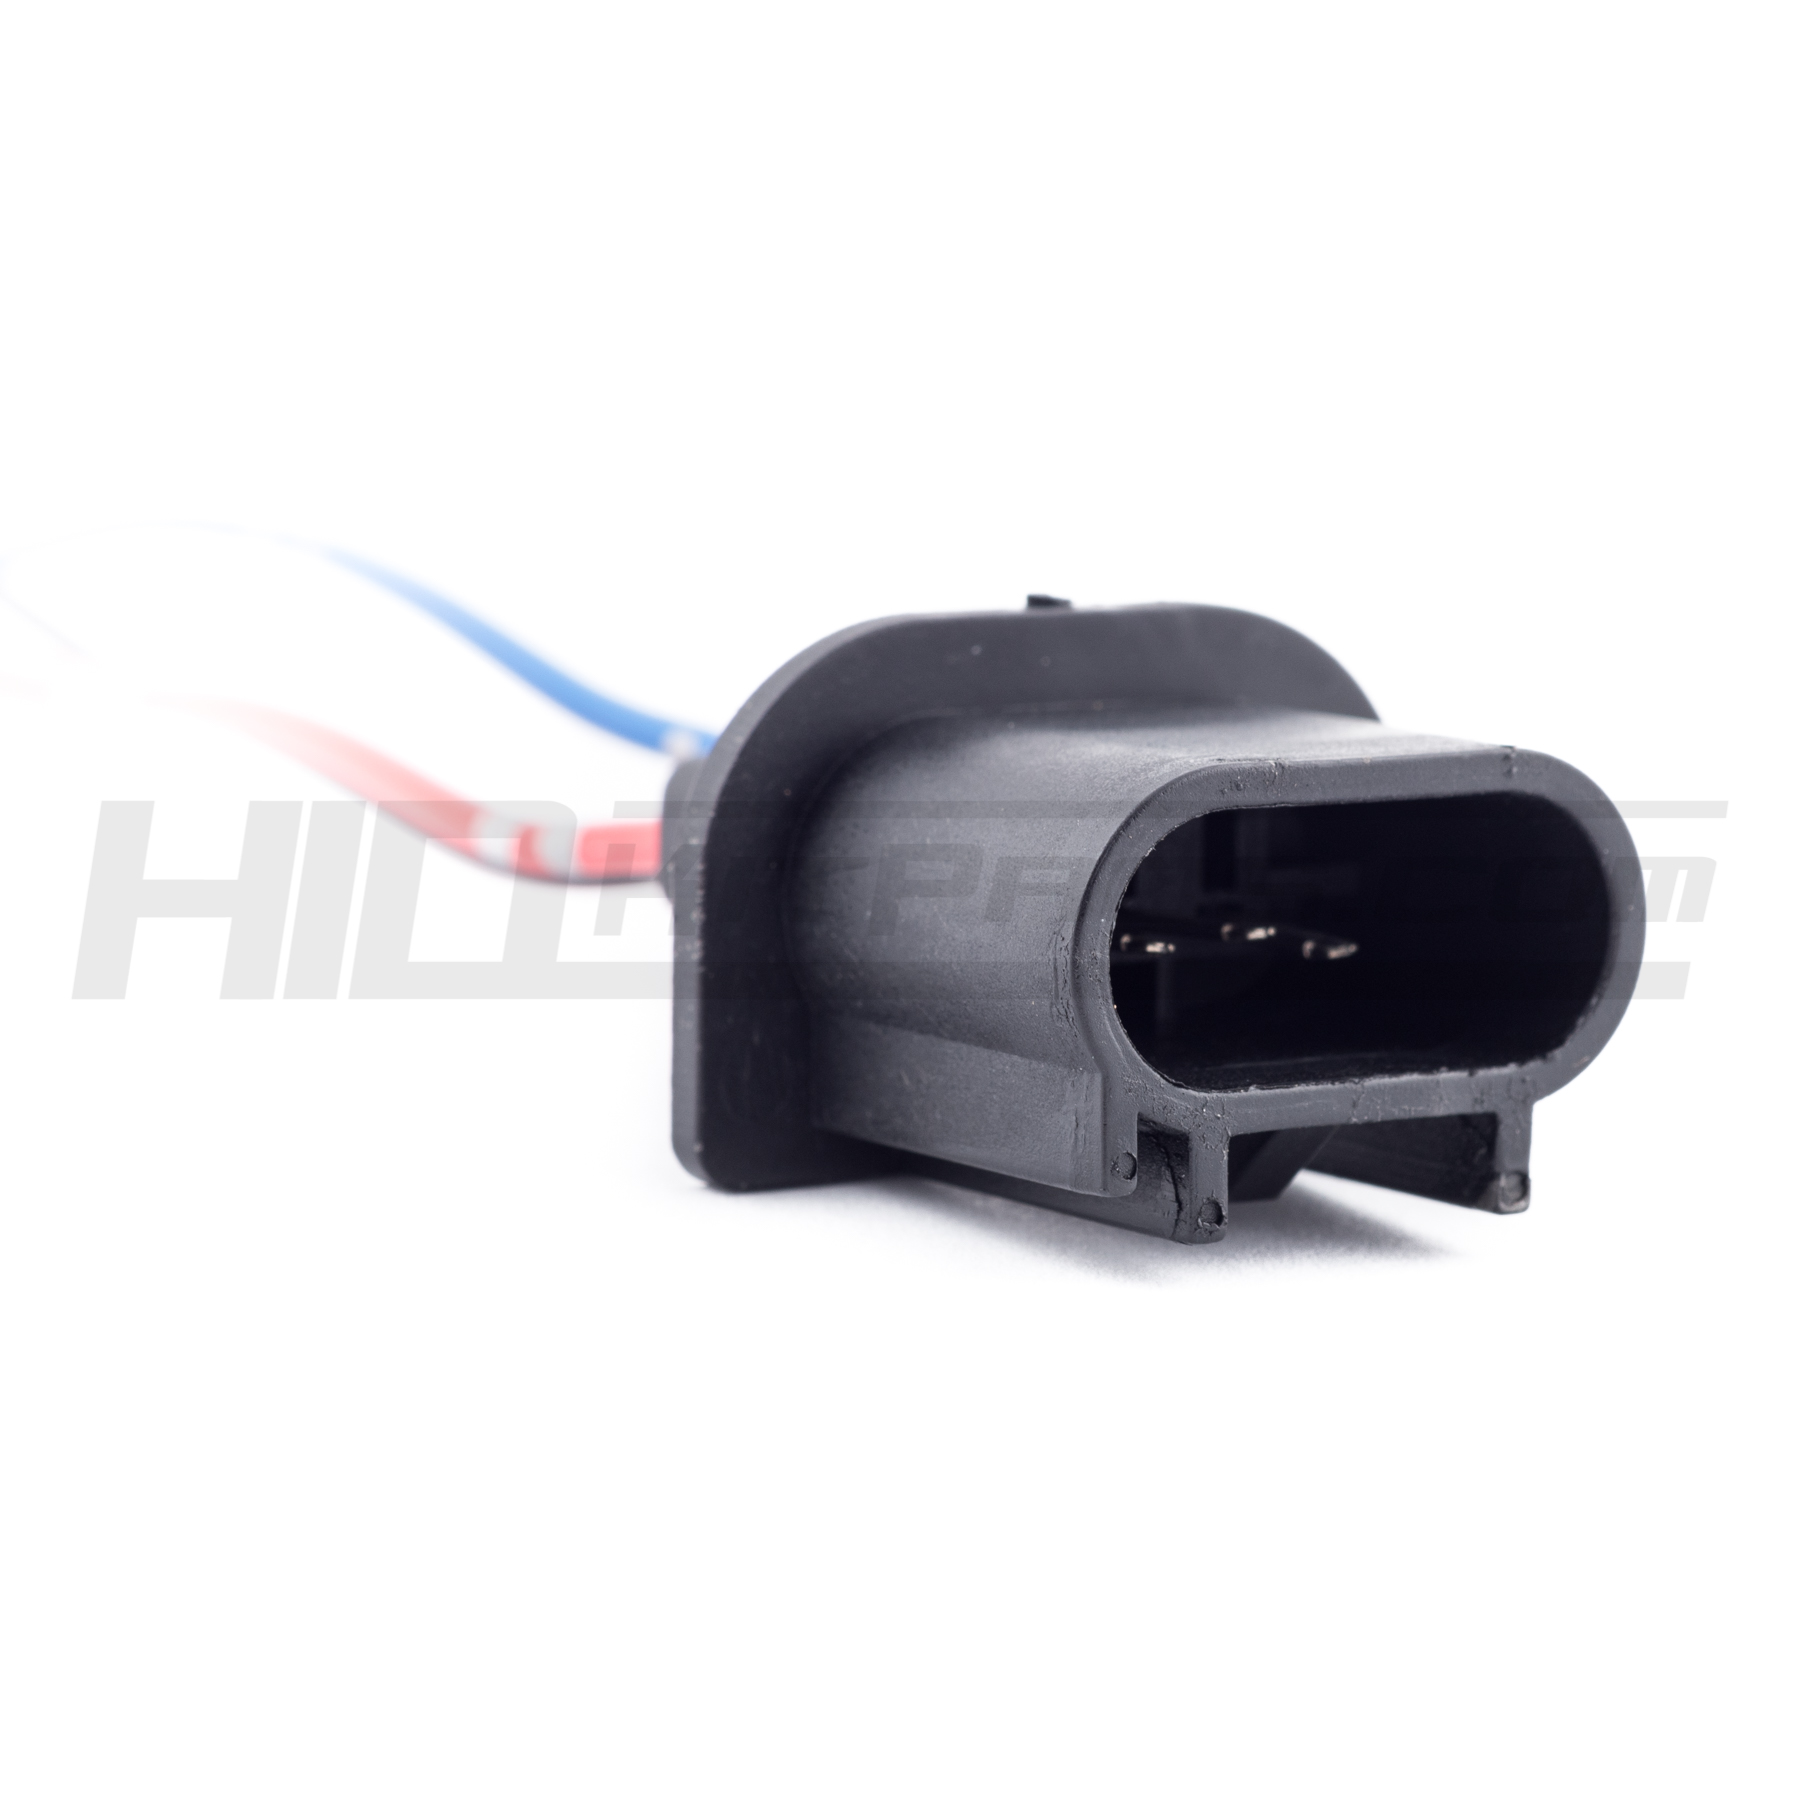 2* H13 9008 HID LED bulb male socket relay base outlet replace plug connector